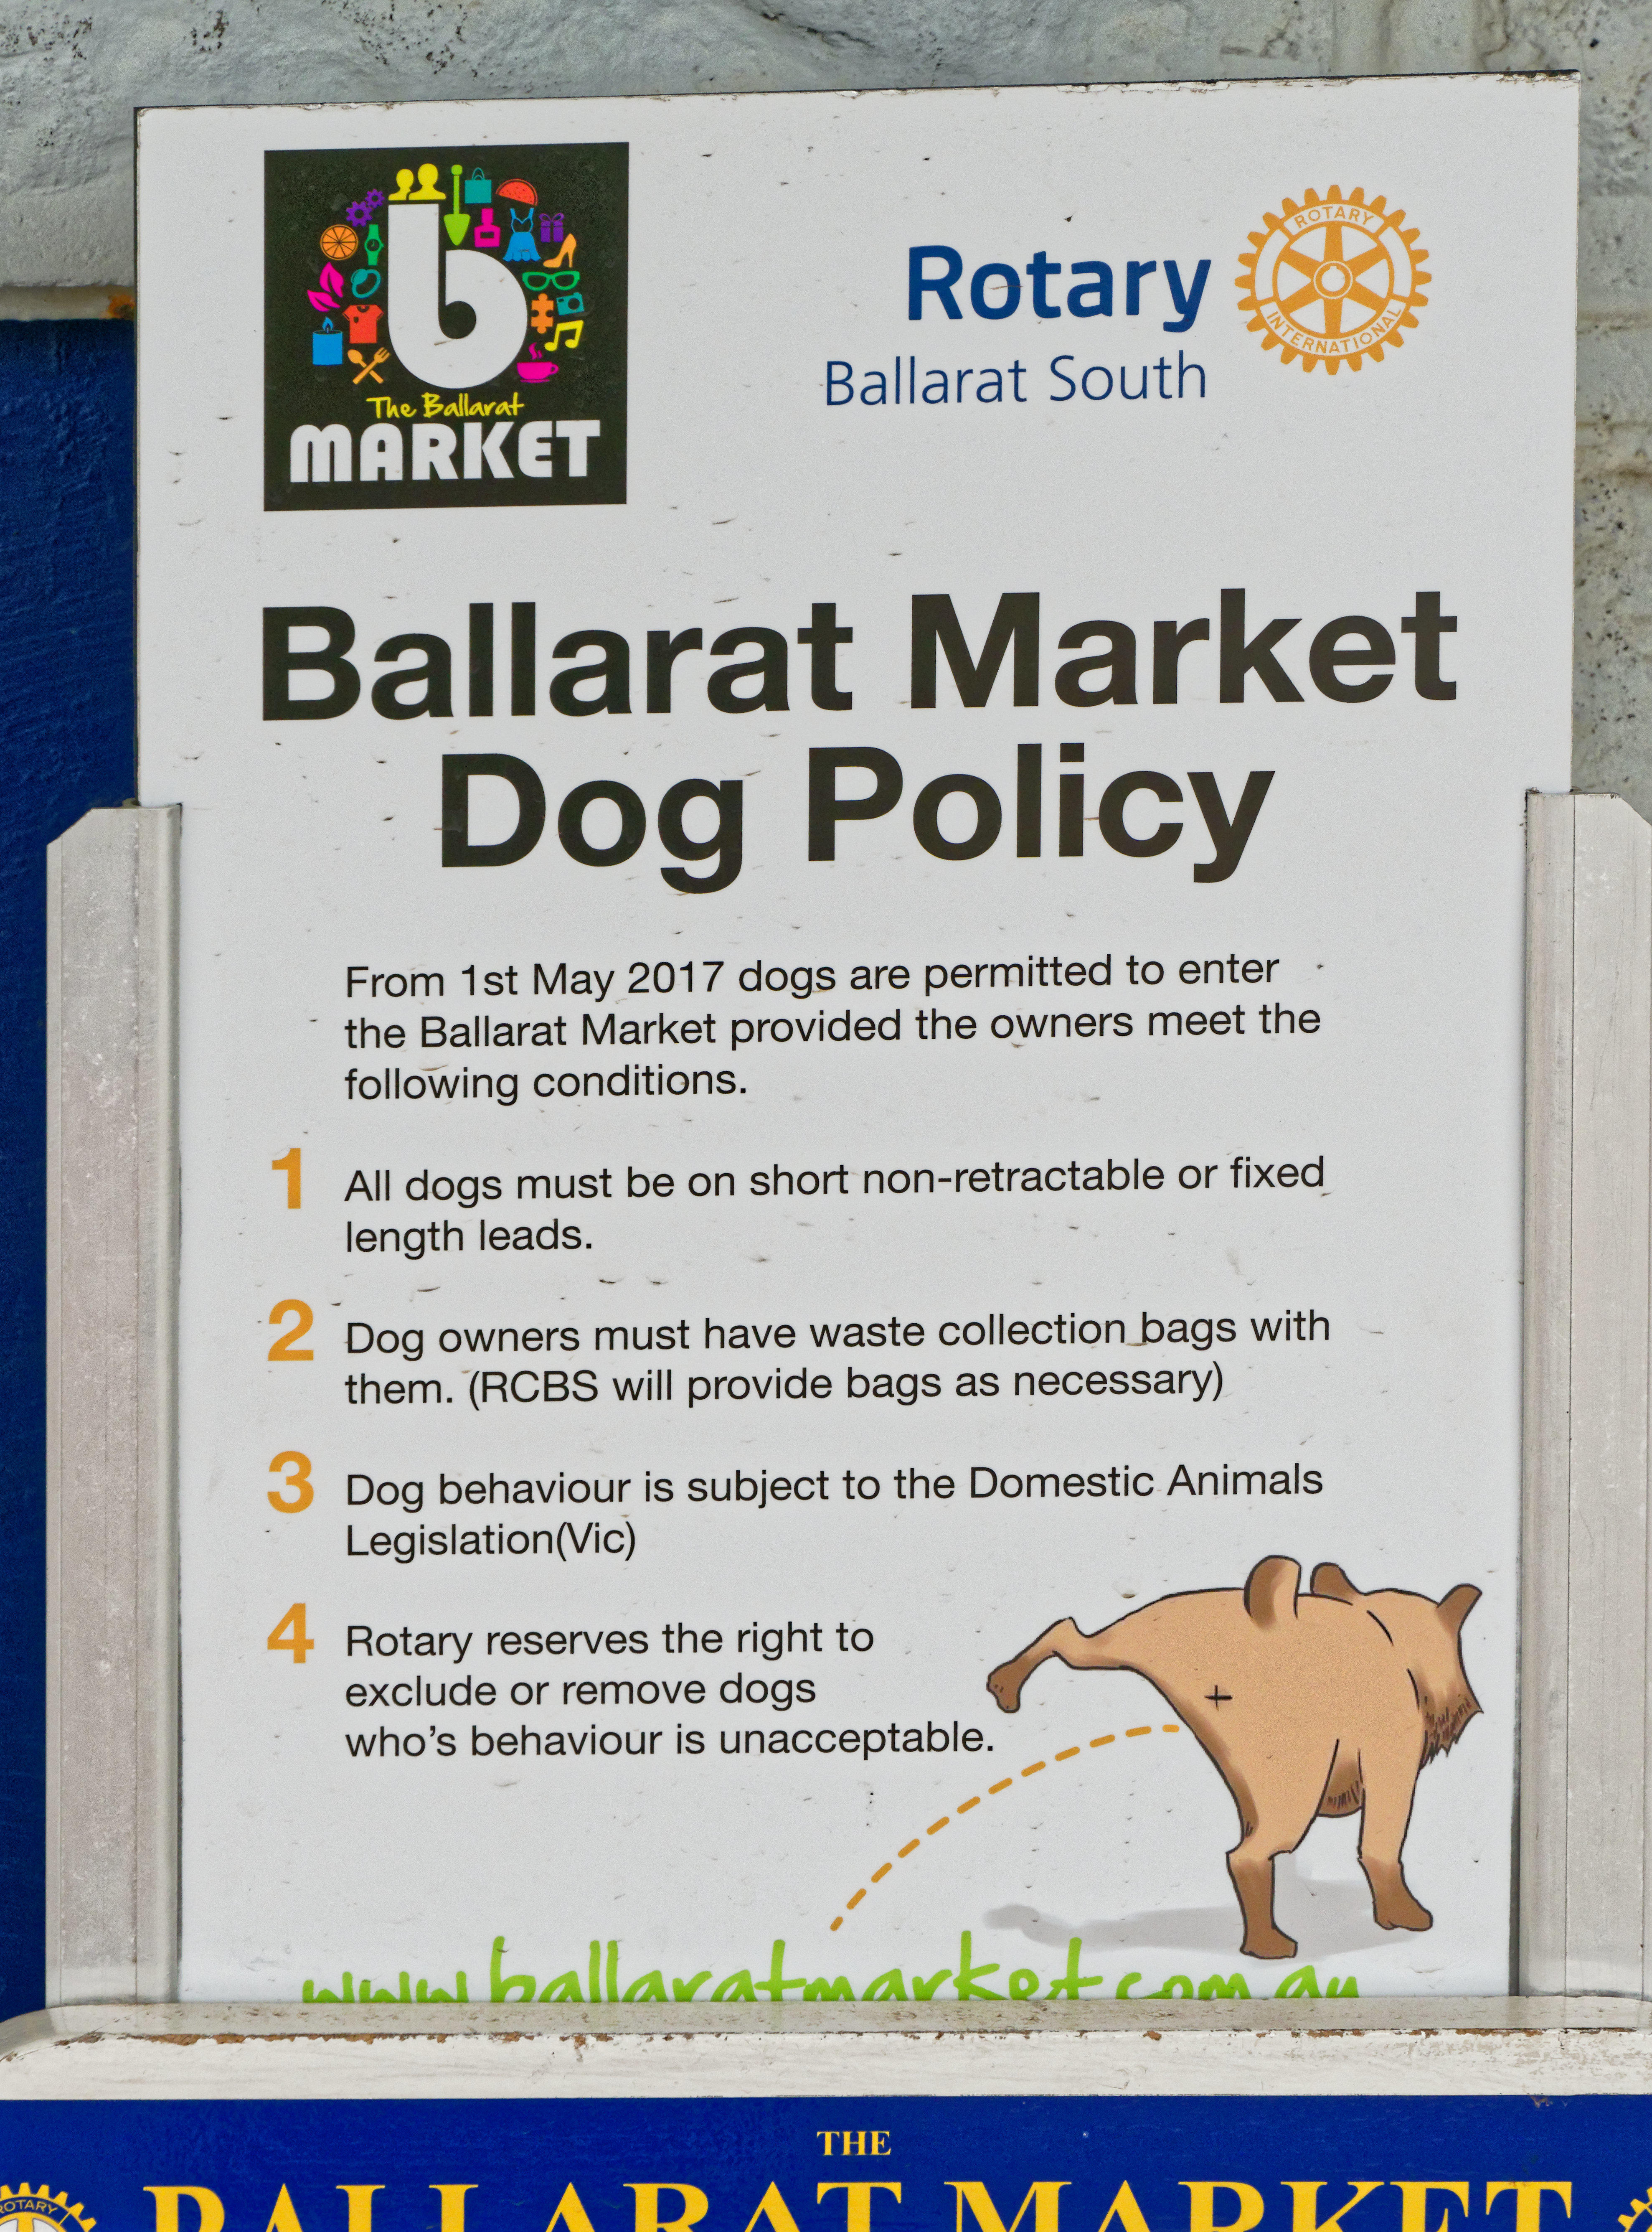 This should be Ballarat-market-4.jpeg.  Is it missing?